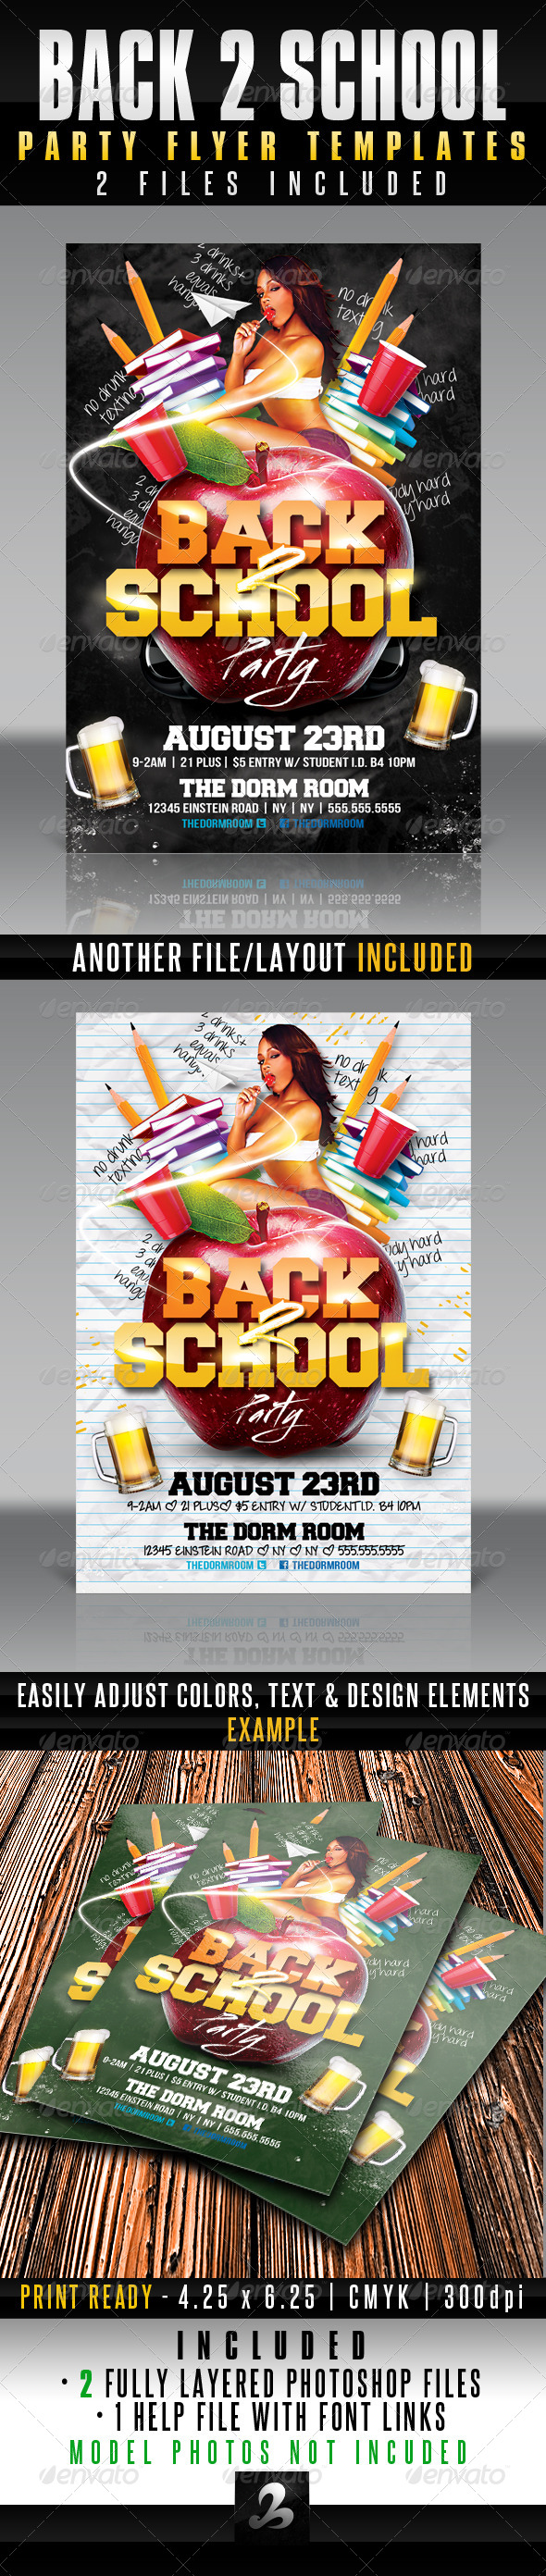 GraphicRiver Back 2 School Party Flyer Template 5311257